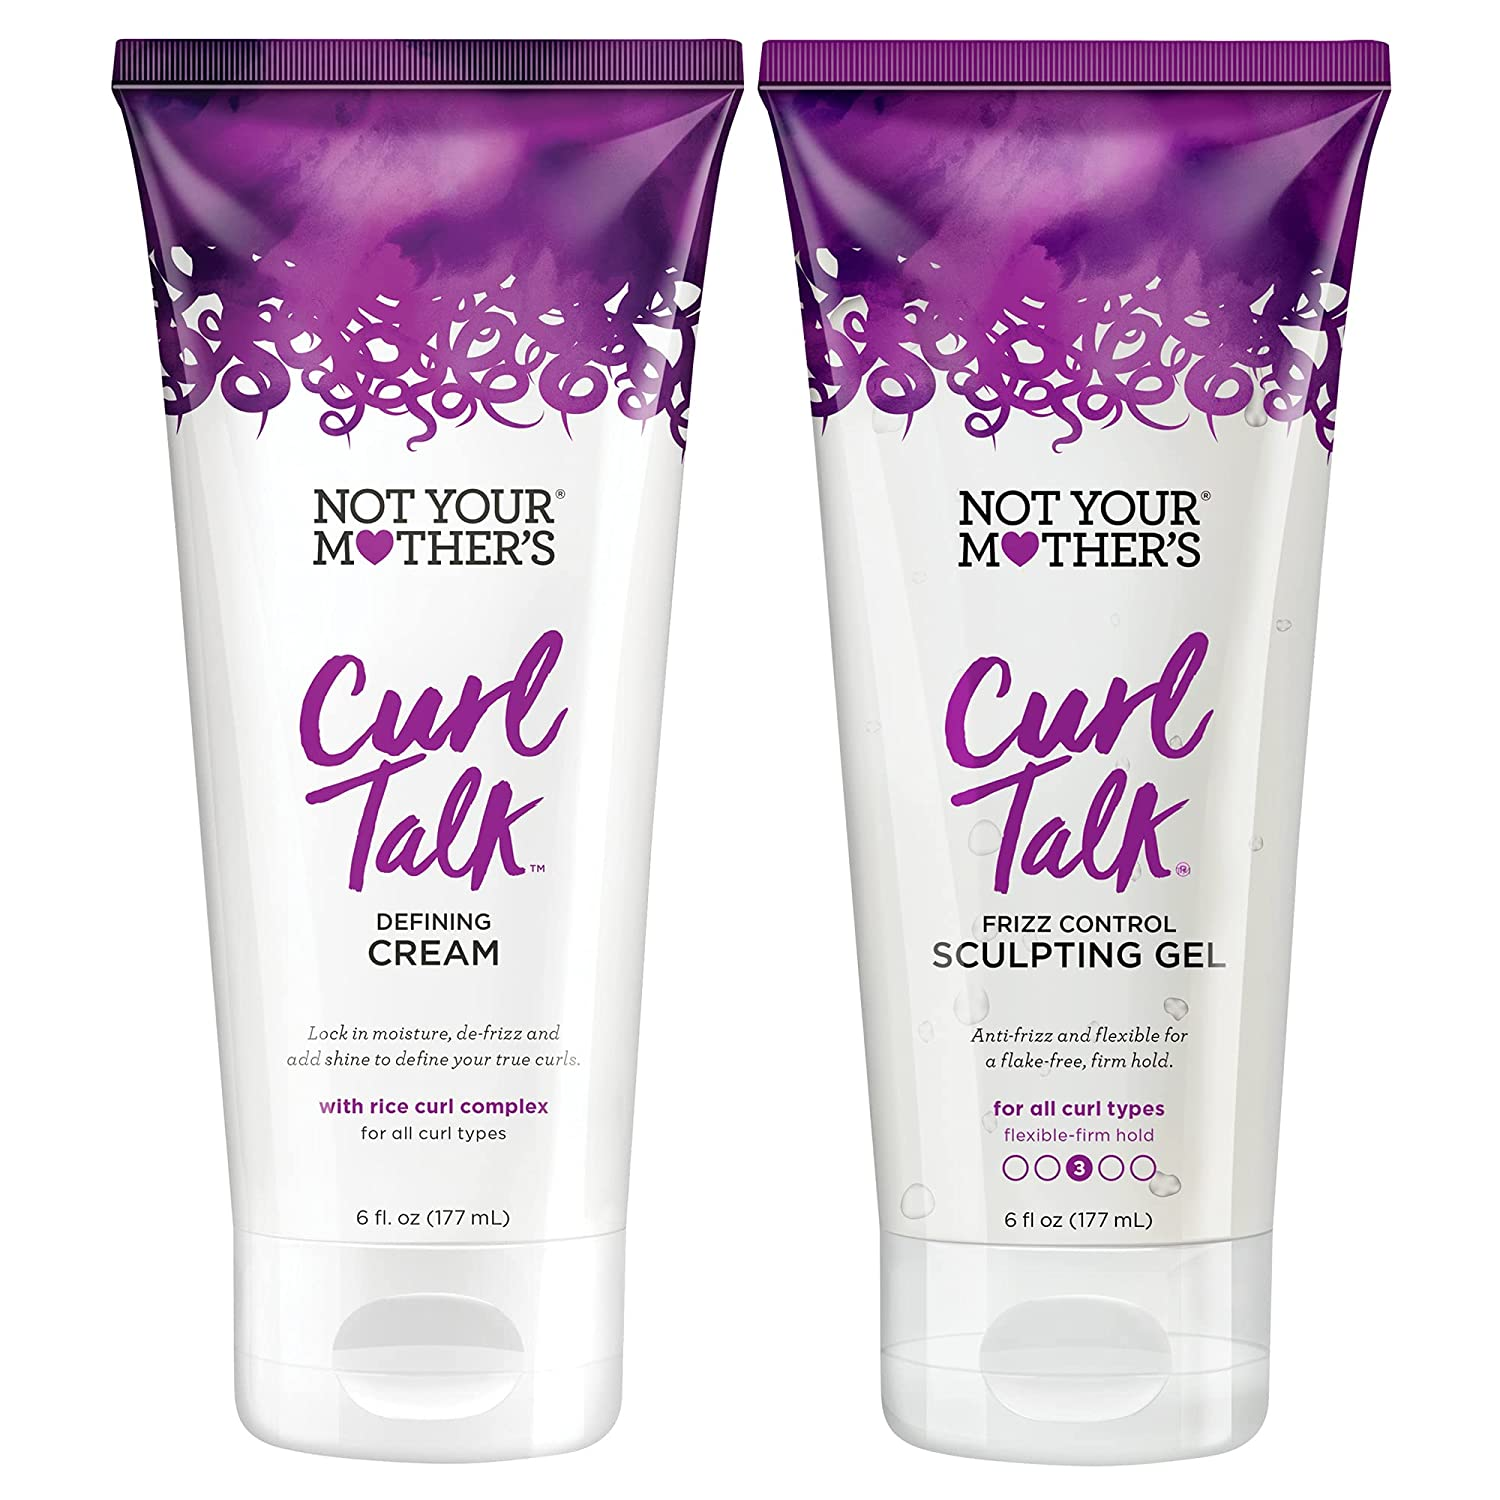 Not Max Super sale period limited 76% OFF Your Mother's Curl Talk Cream Set - + Styling Gel